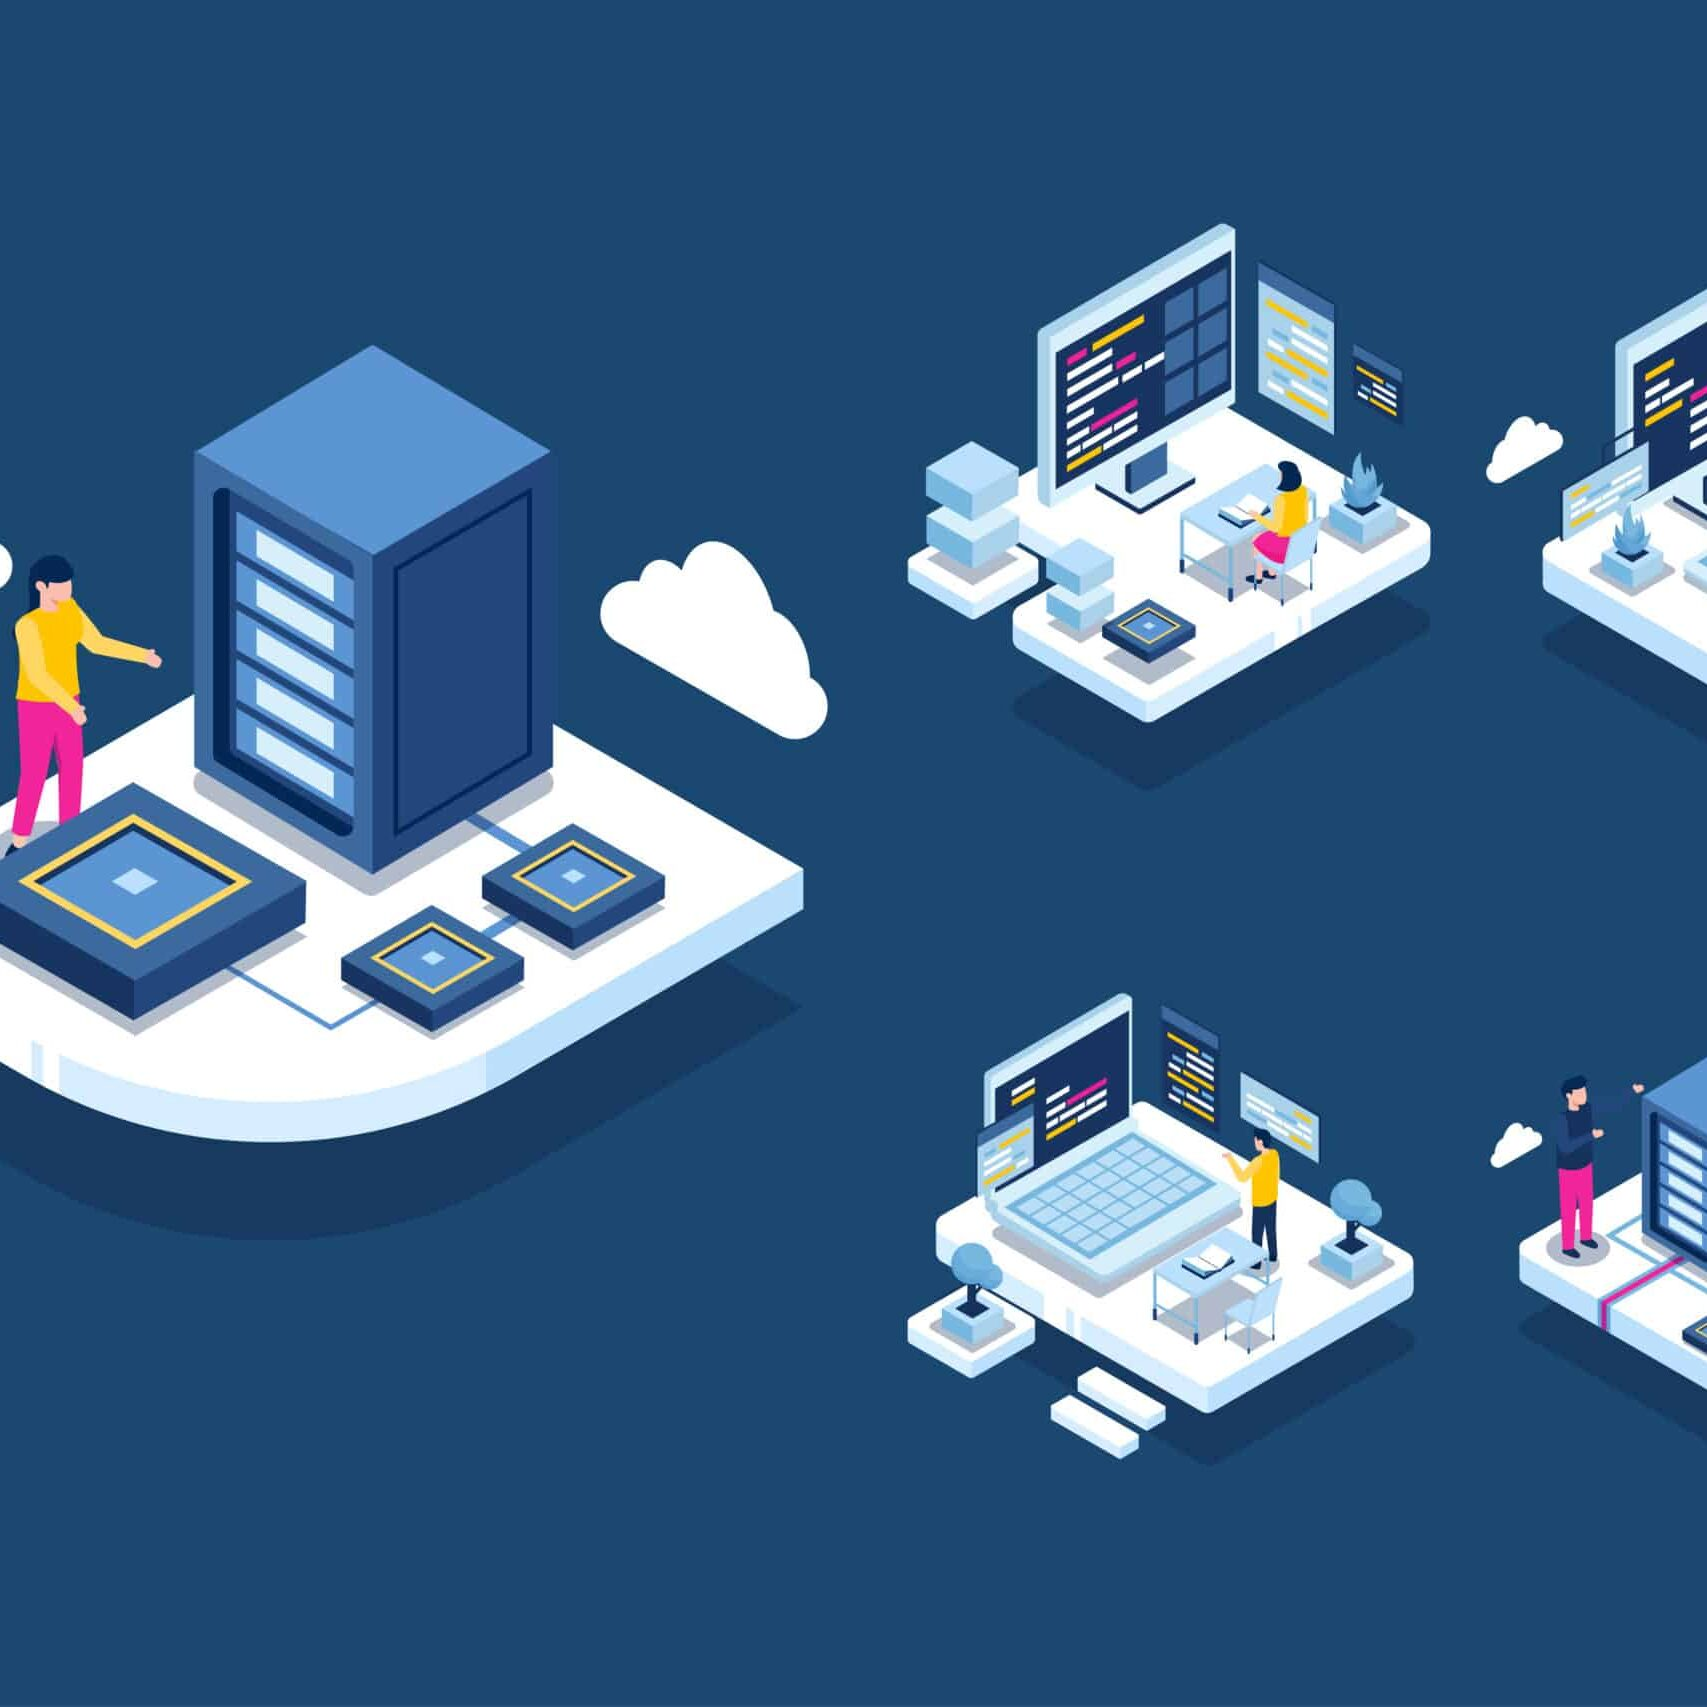 Authorities working in data center room hosting server computer, Provide information services for business, isometric concept vector illustration